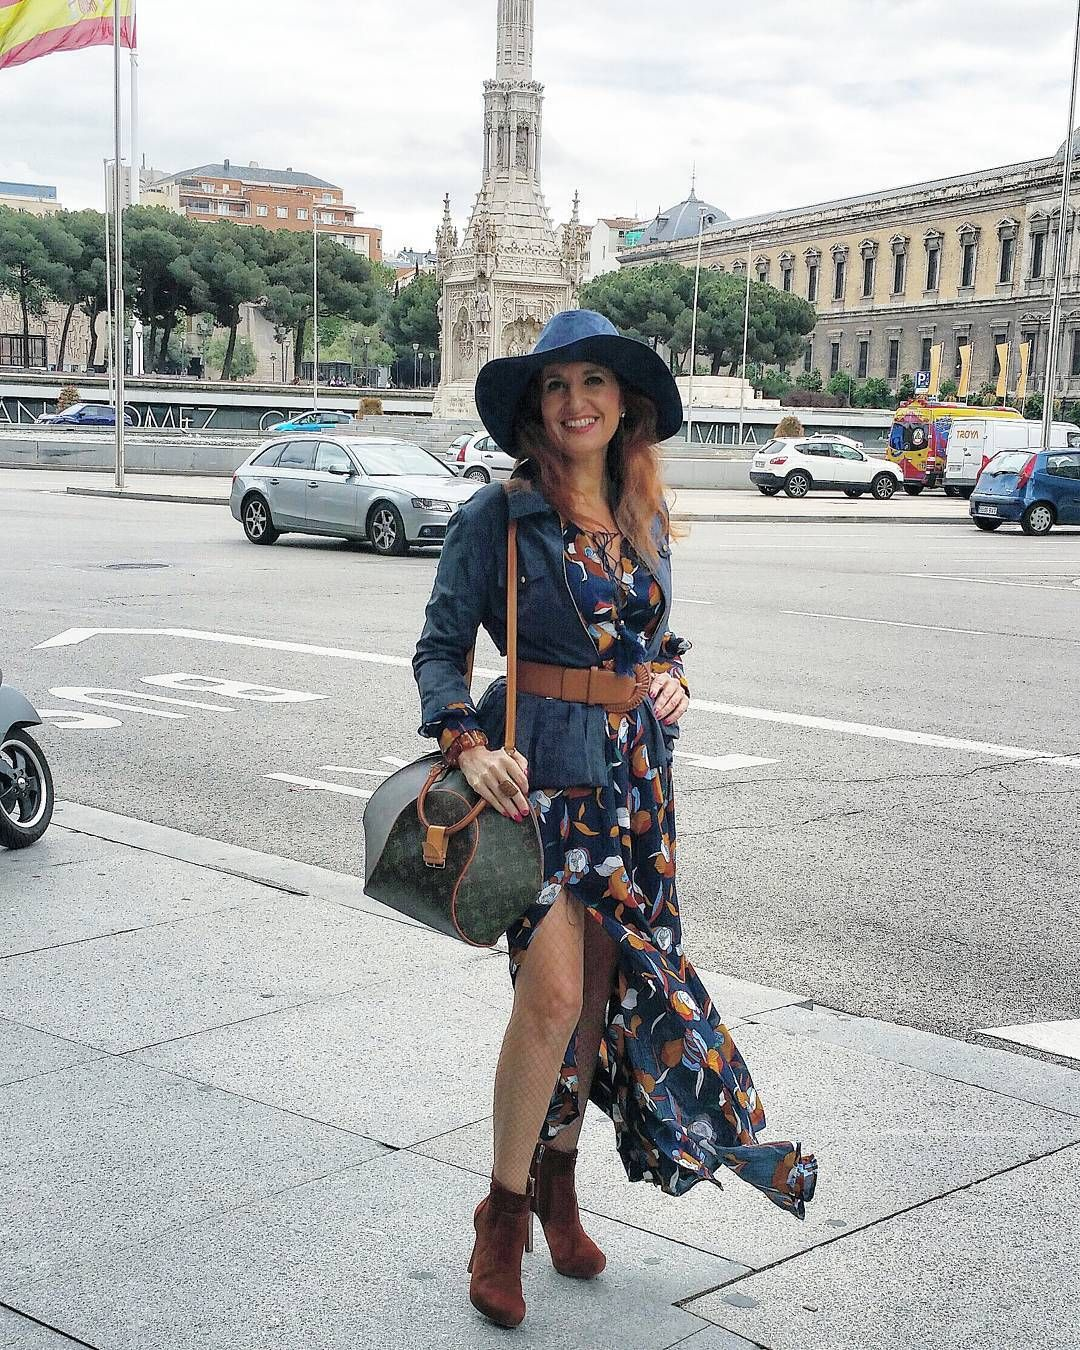 Miércoles #pressday# en los mejores#shrooms#fashionista# #madridfashion#mylook#openday#instalovers#inspiration#over40fashion#instagramers#eventos#picotheday#pretty#partytime#outfitoftheday#dress#elegance#lookdeldia#outfitideas#mystyle#nice#instalikes#influencer#trendy#livelife#bloggermadrid#instamoda#lifestyle#lovelife#coolhunting#openday# by pilar_rodero_moda